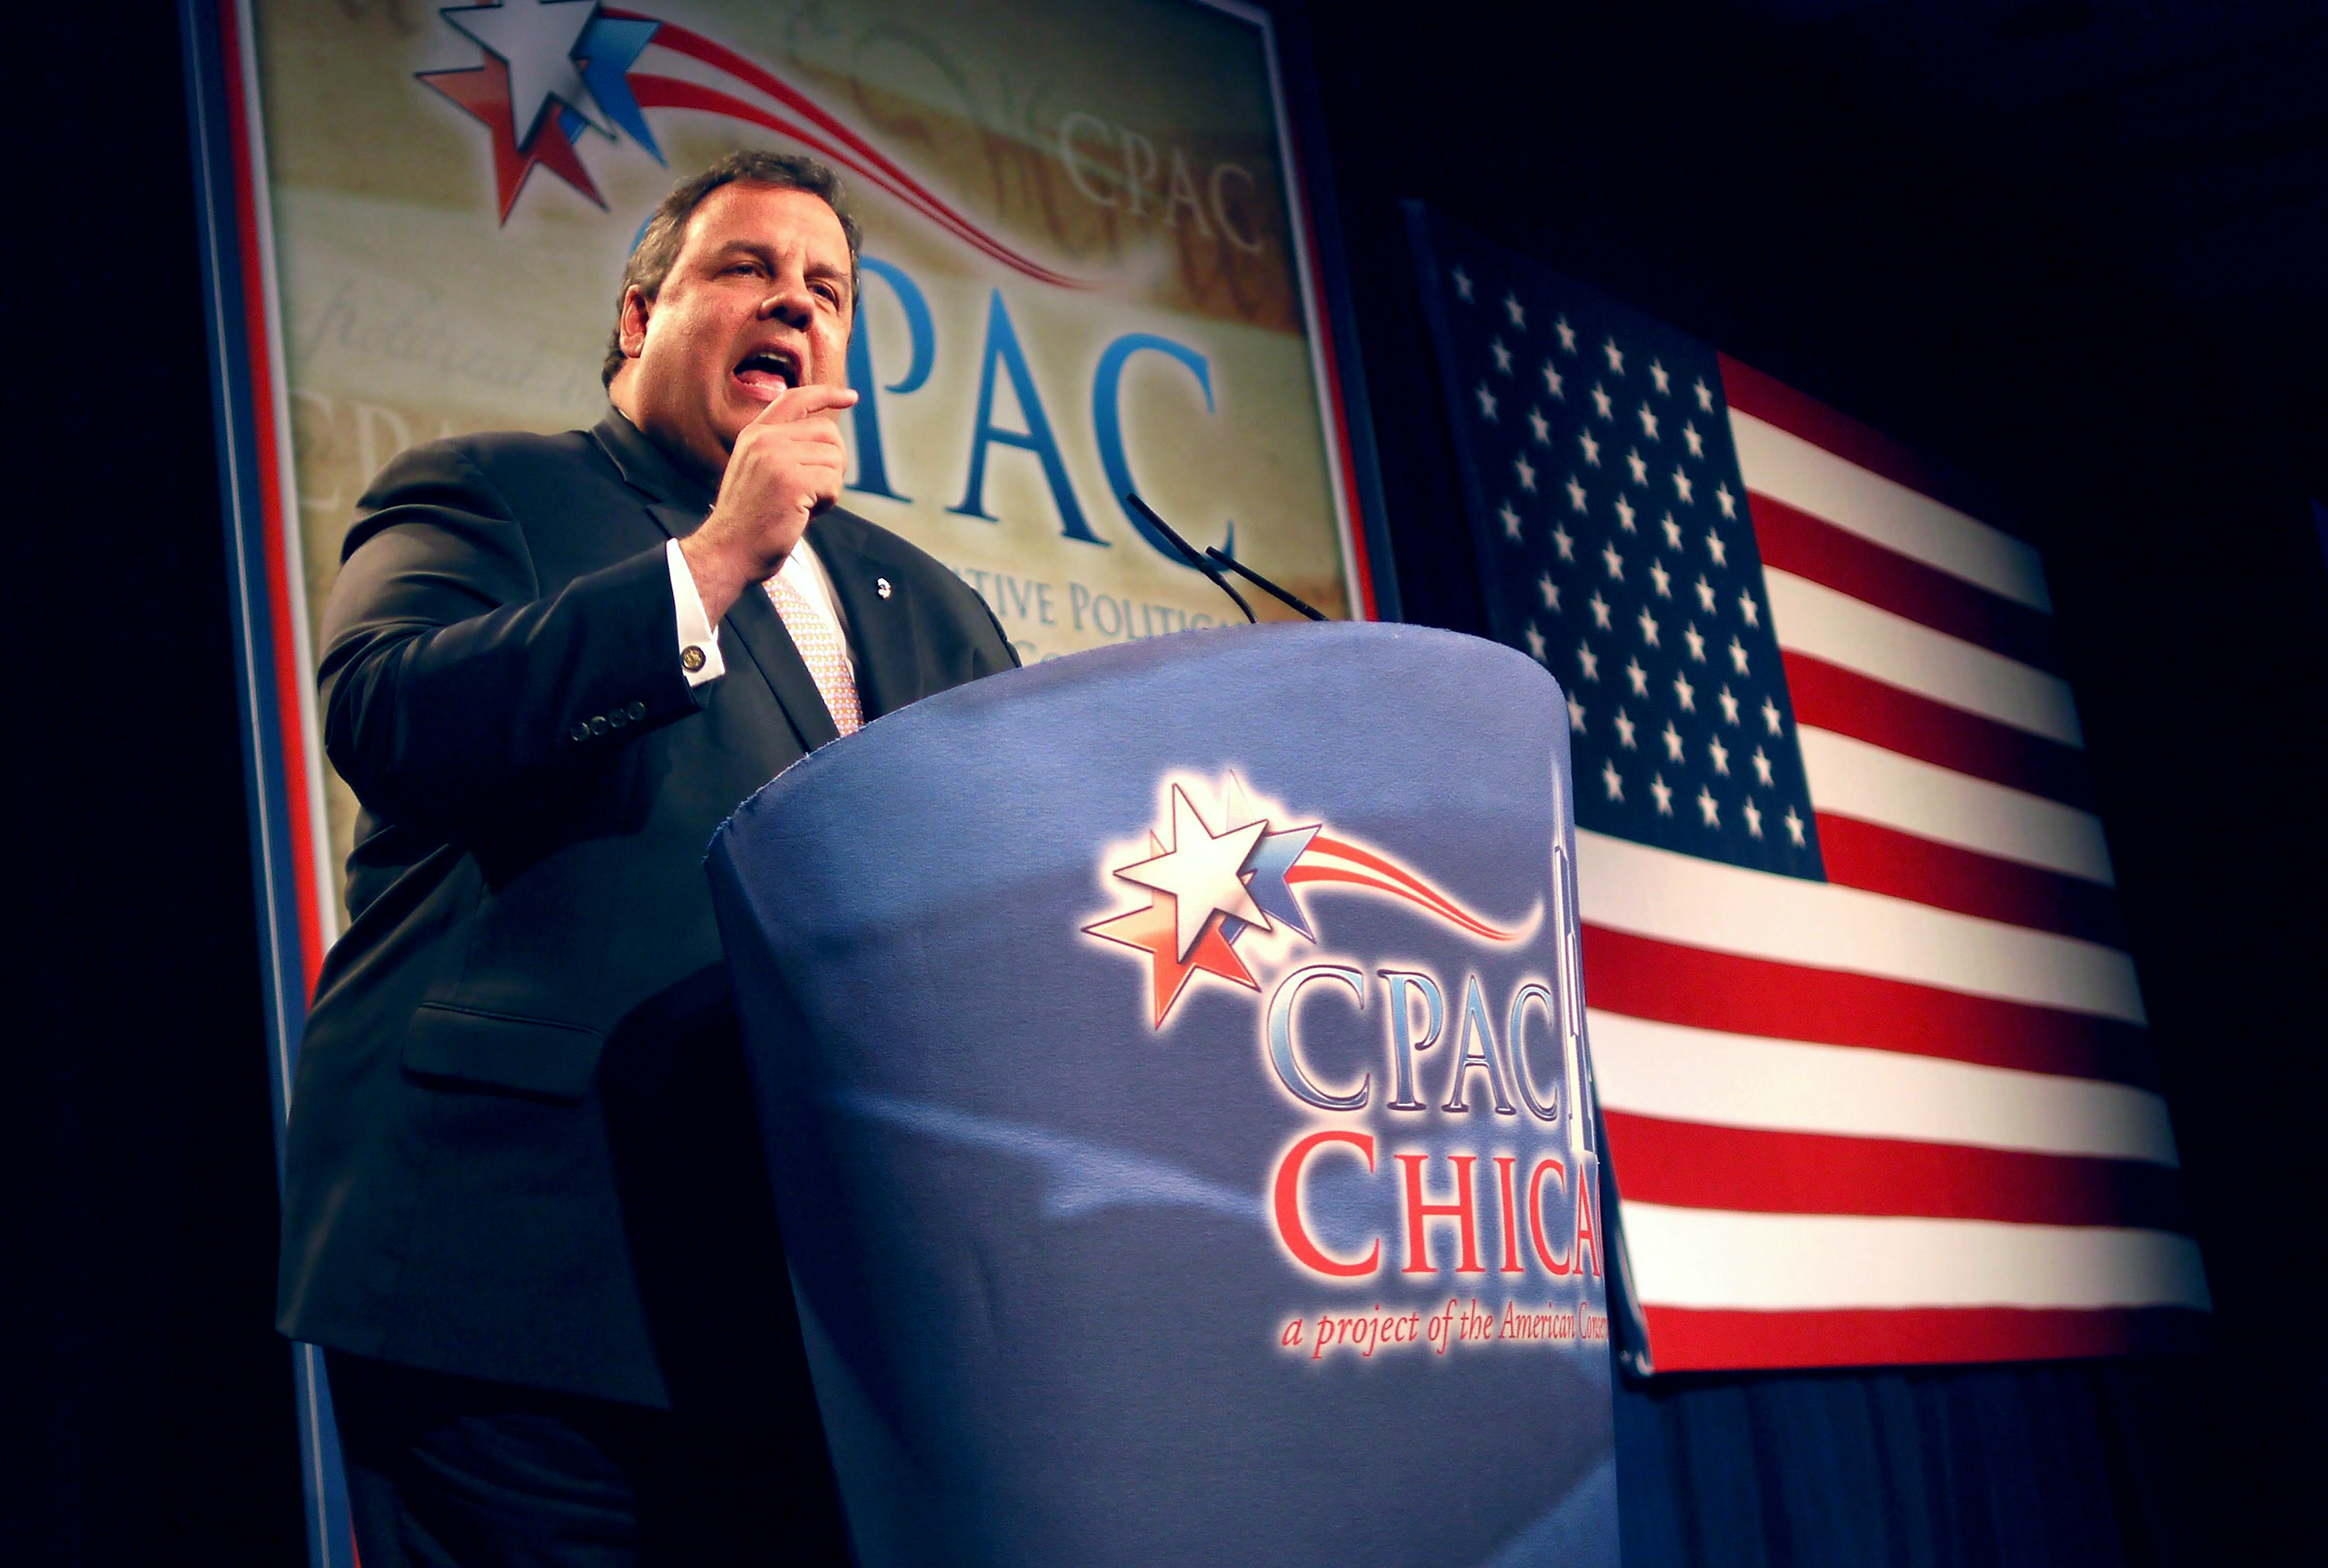 Chris Christie Calls Gastric Bypass Surgery Too Risky What Are